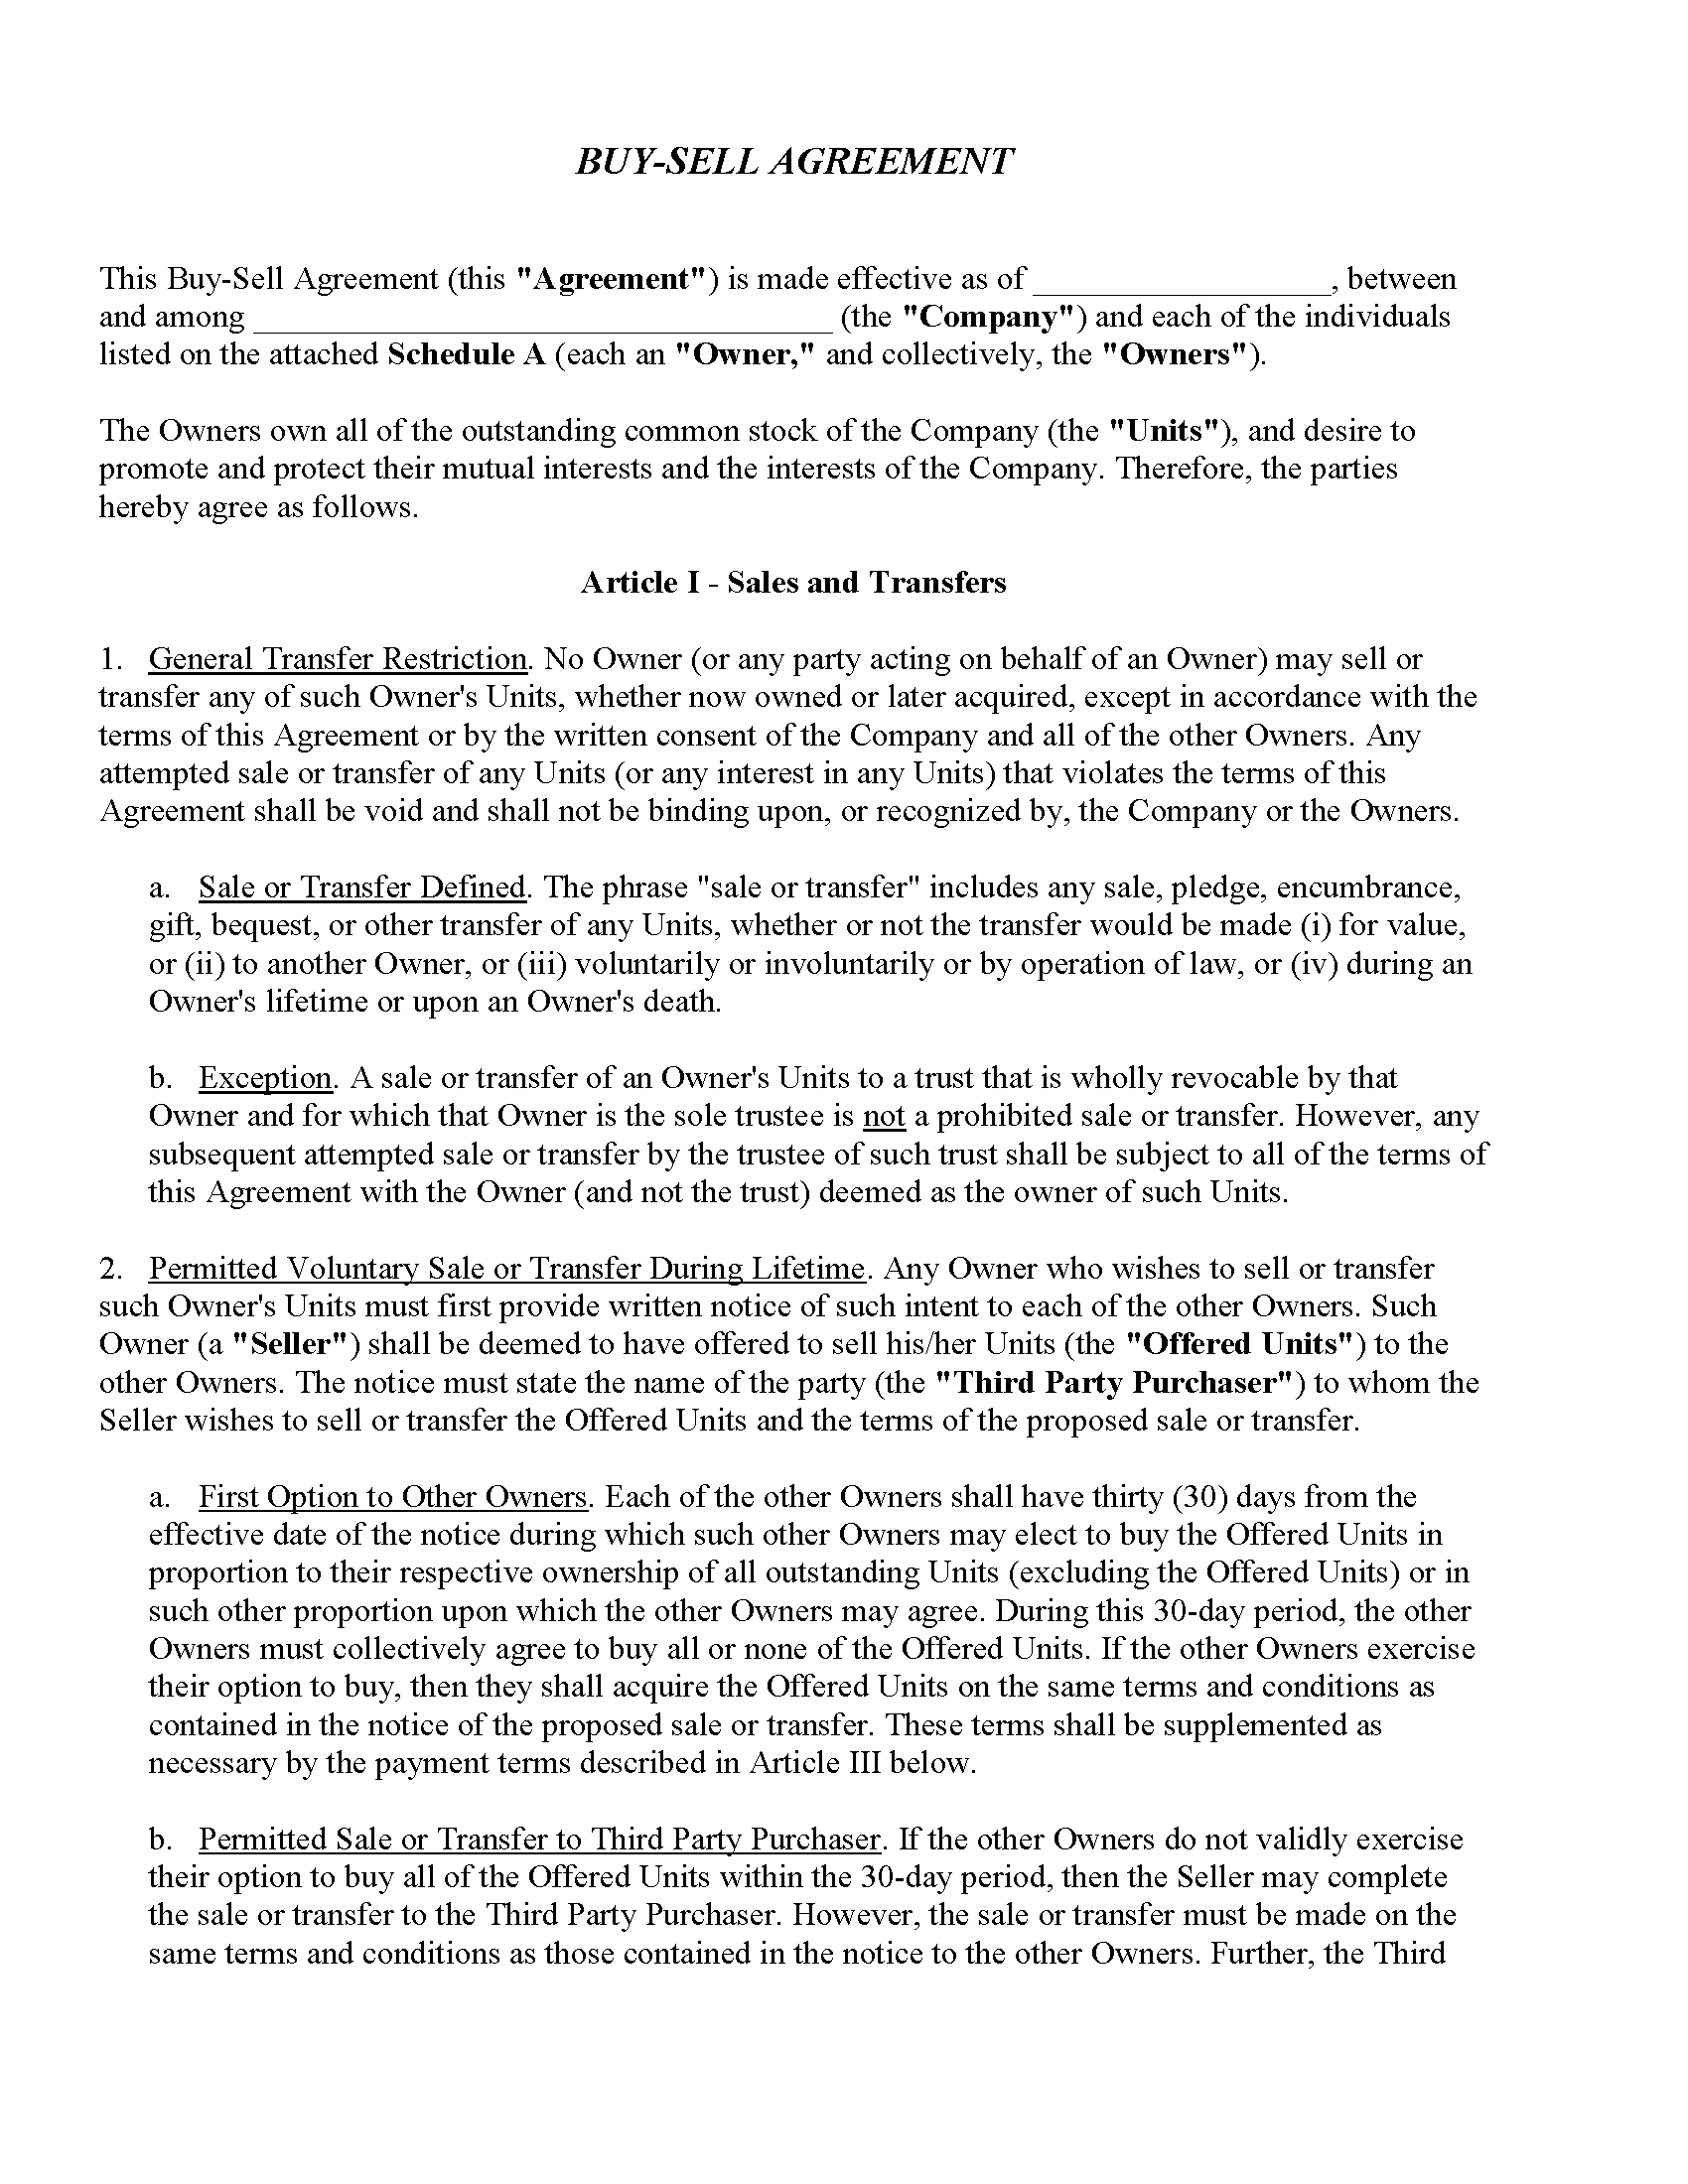 Buy-Sell Agreement Fillable PDF Form